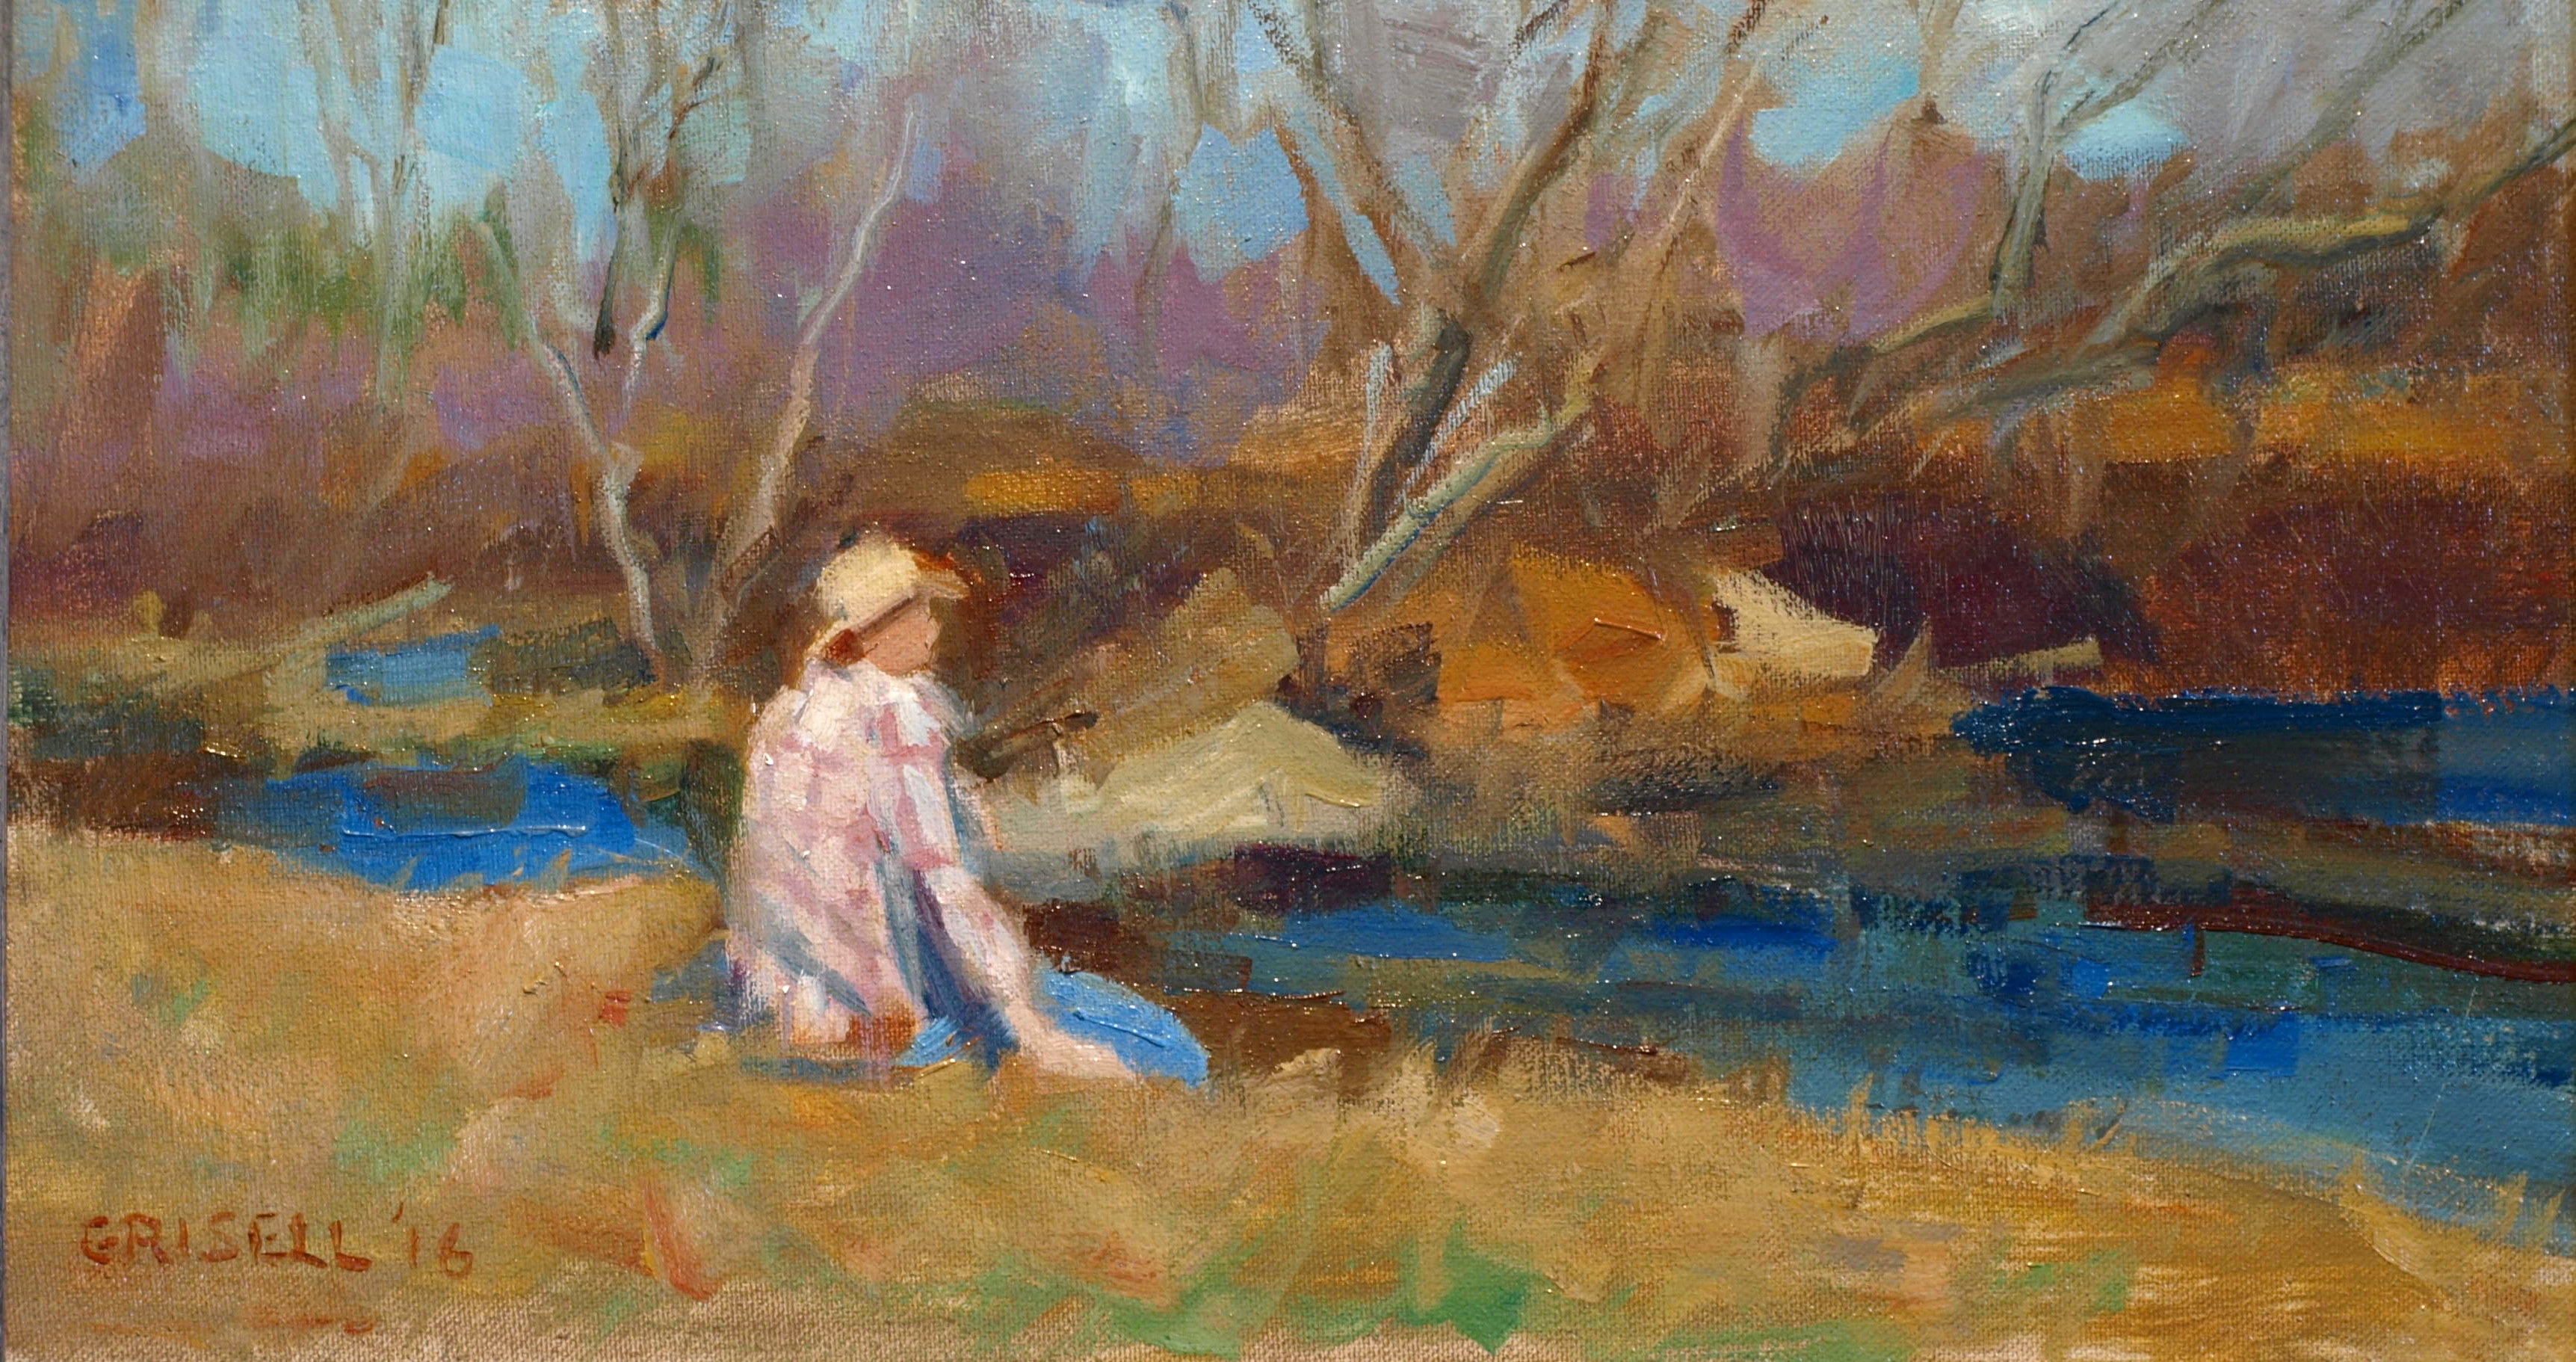 Aspetuck River, Oil on Canvas on Panel, 9 x 16 Inches, by Susan Grisell, $250